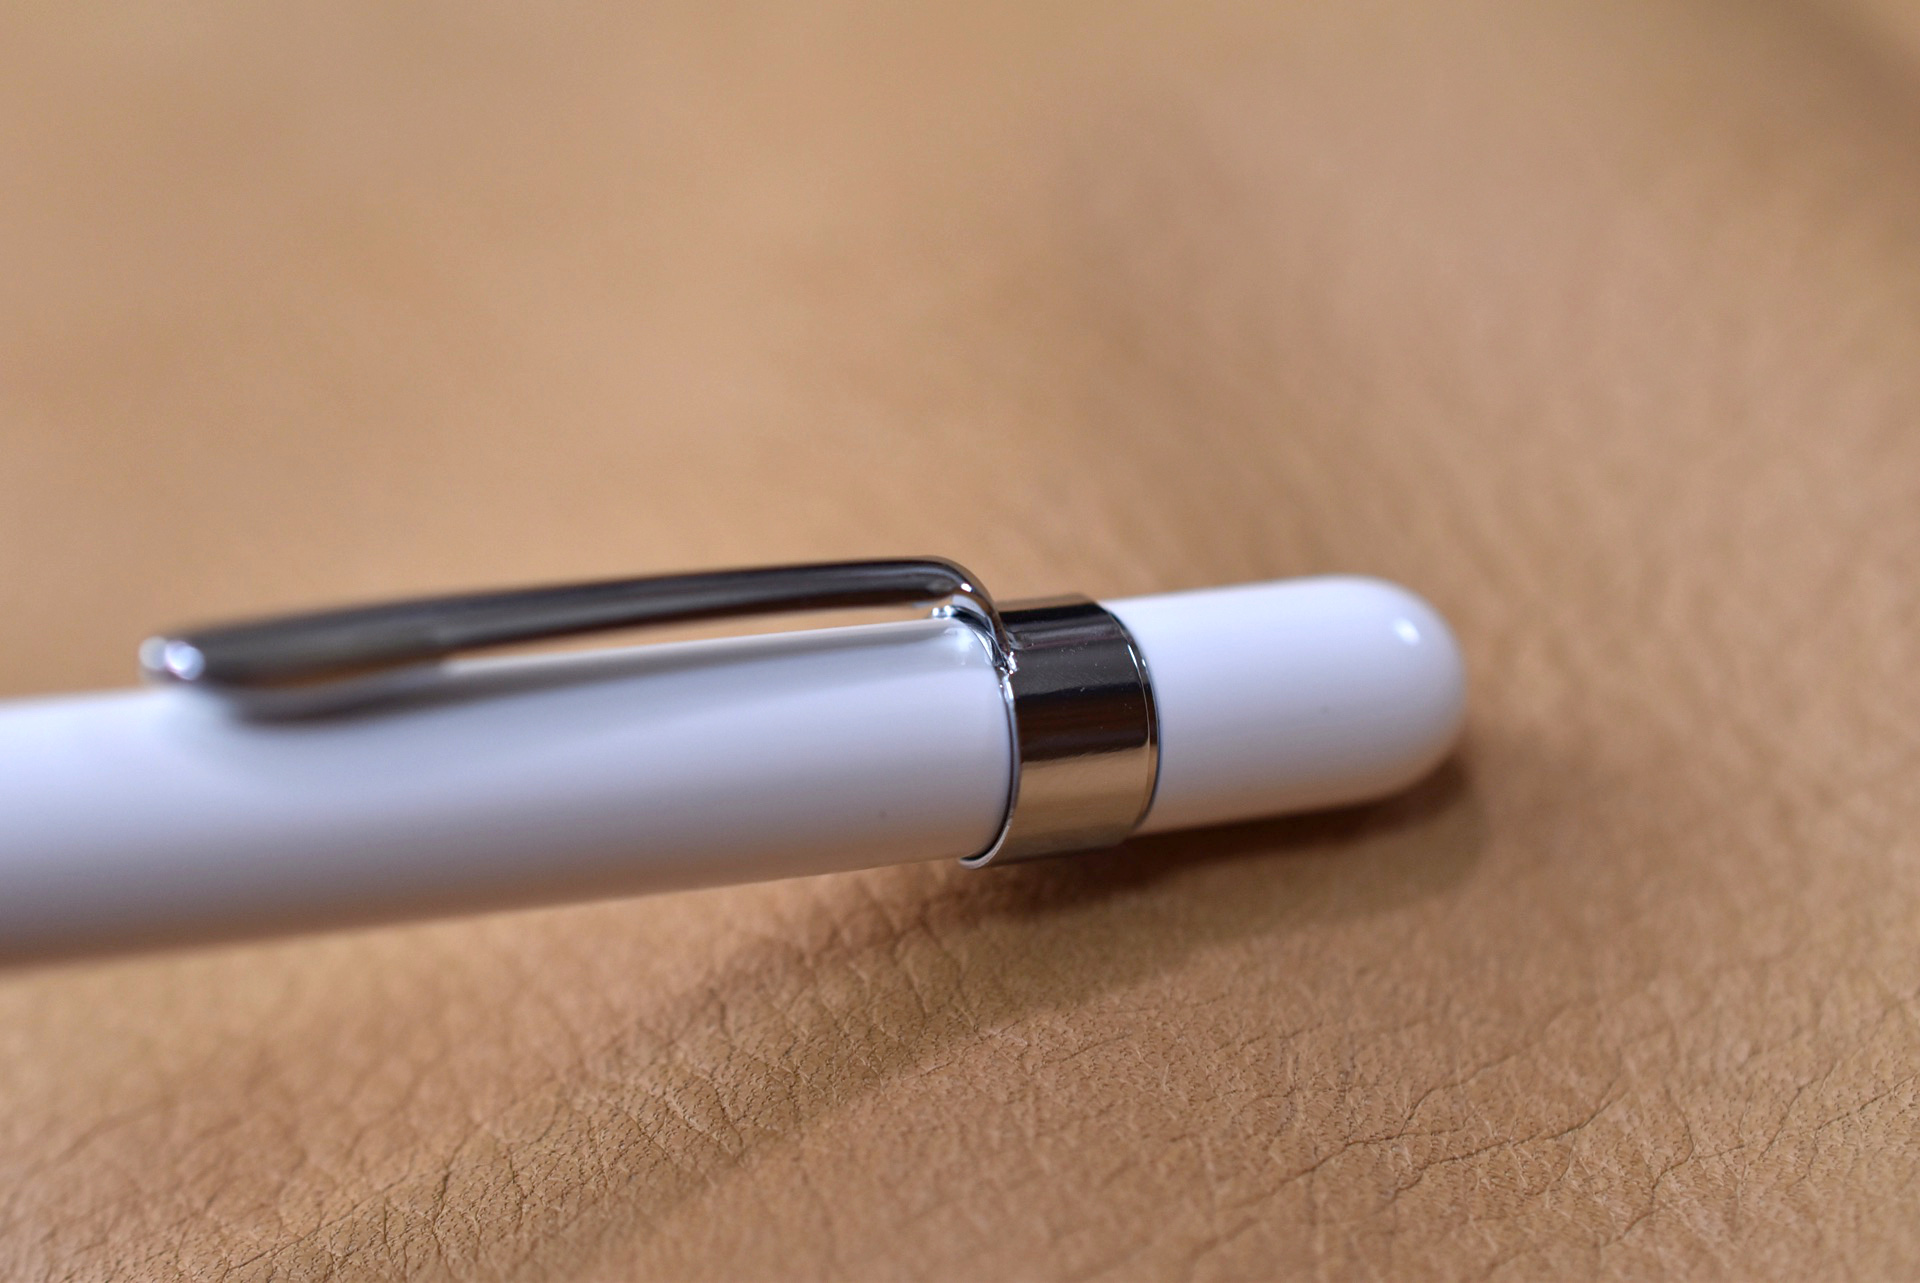 Apple Pencil Clip 金属部分に